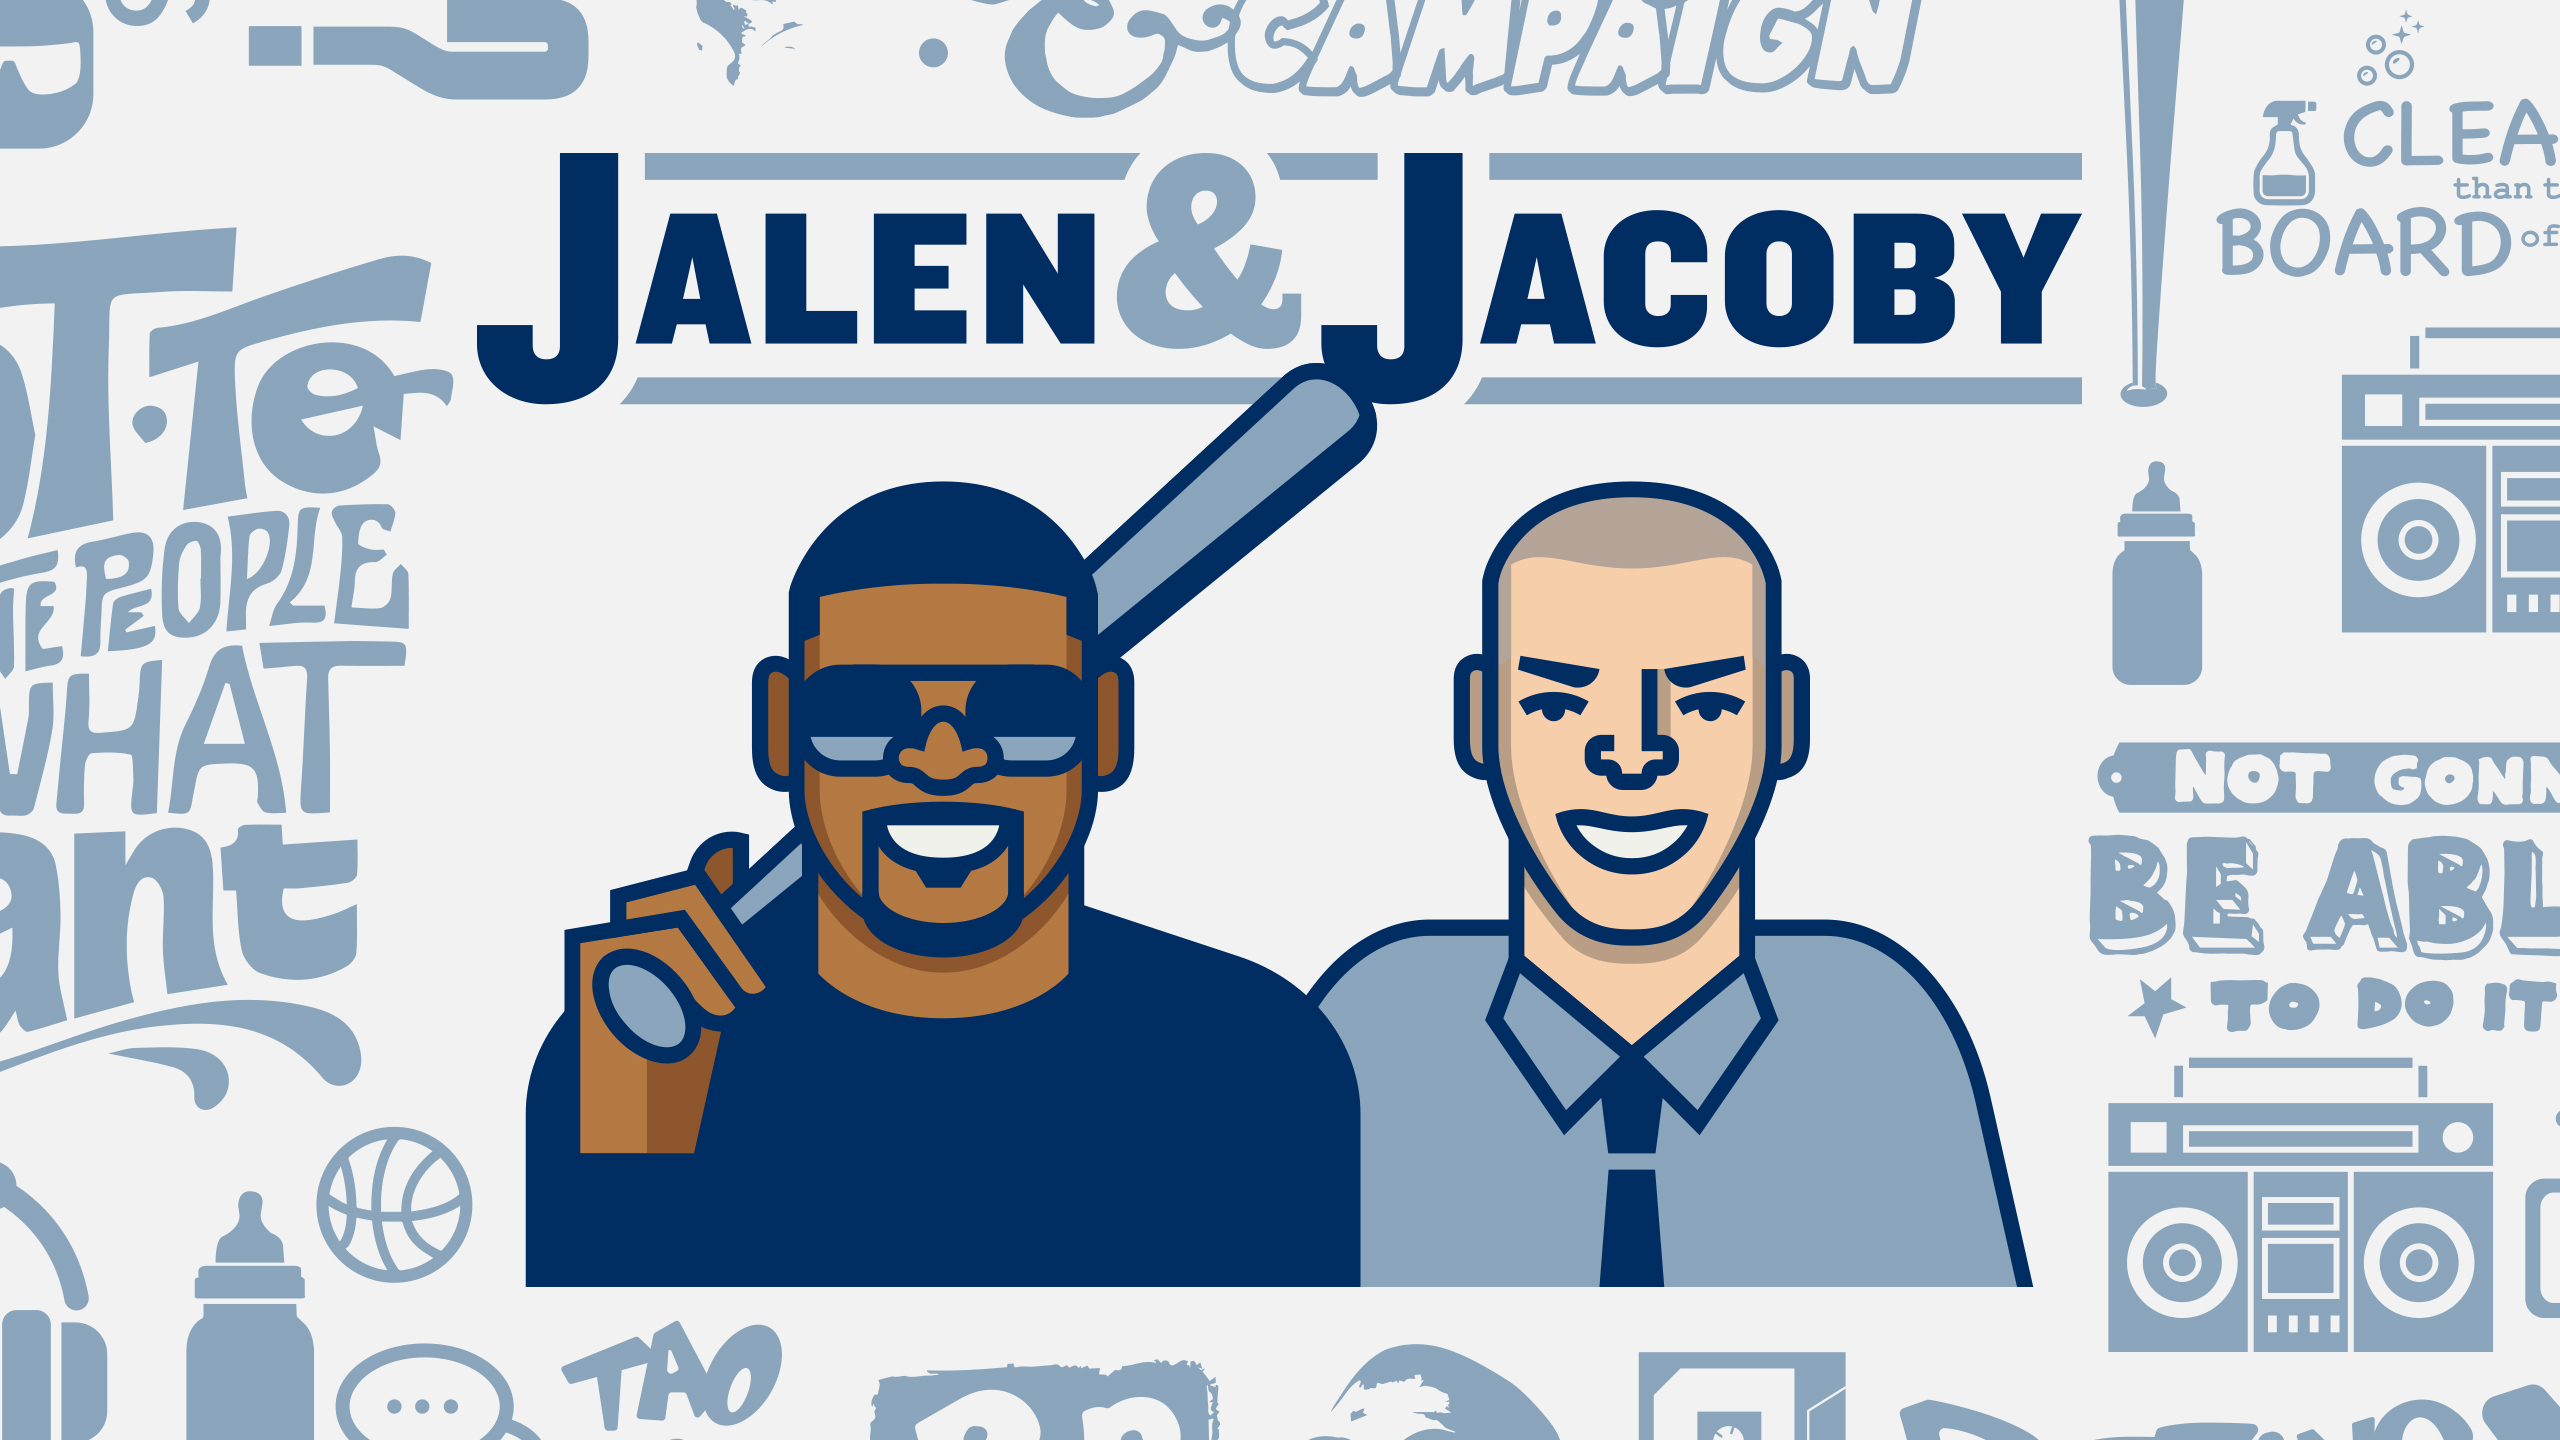 Wed, 2/13 - Jalen & Jacoby